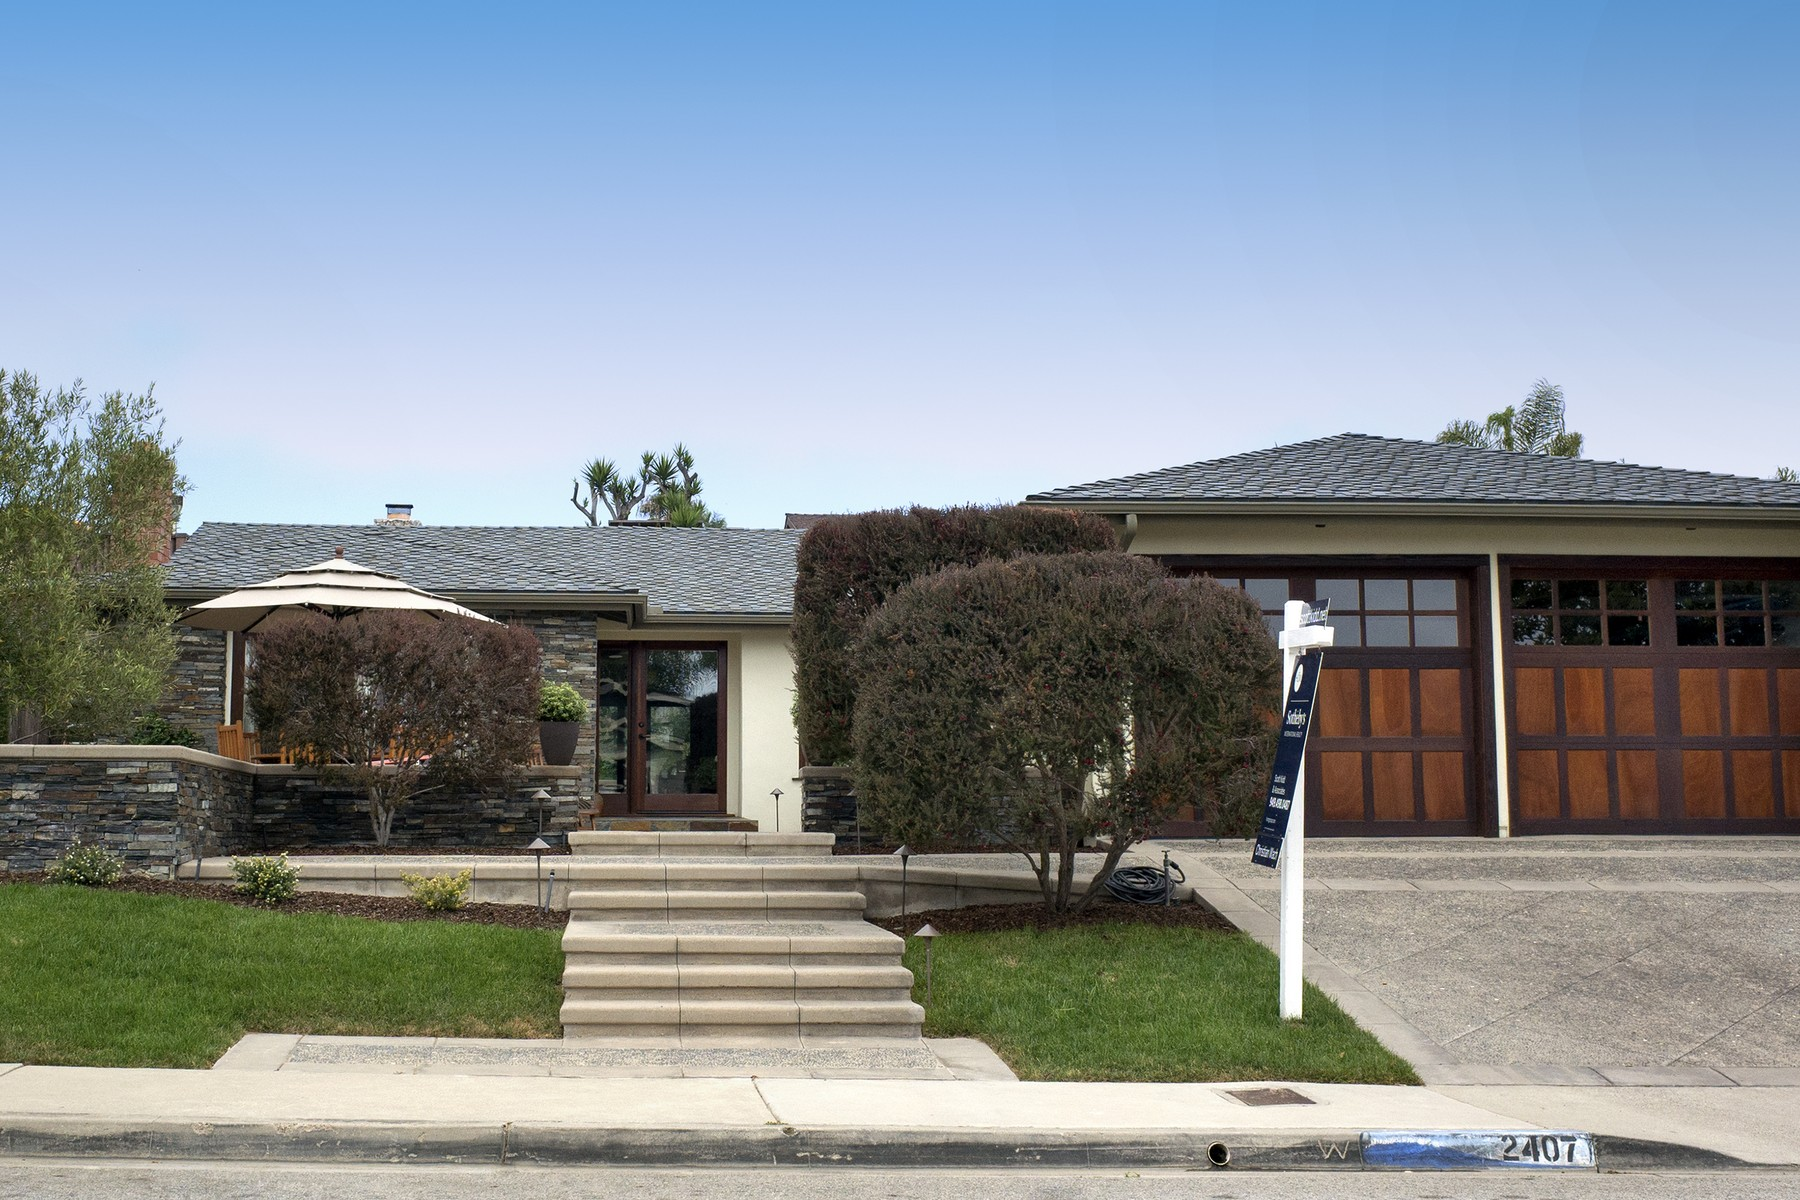 Single Family Home for Sale at 2407 Calle Monte Carlo San Clemente, California 92672 United States